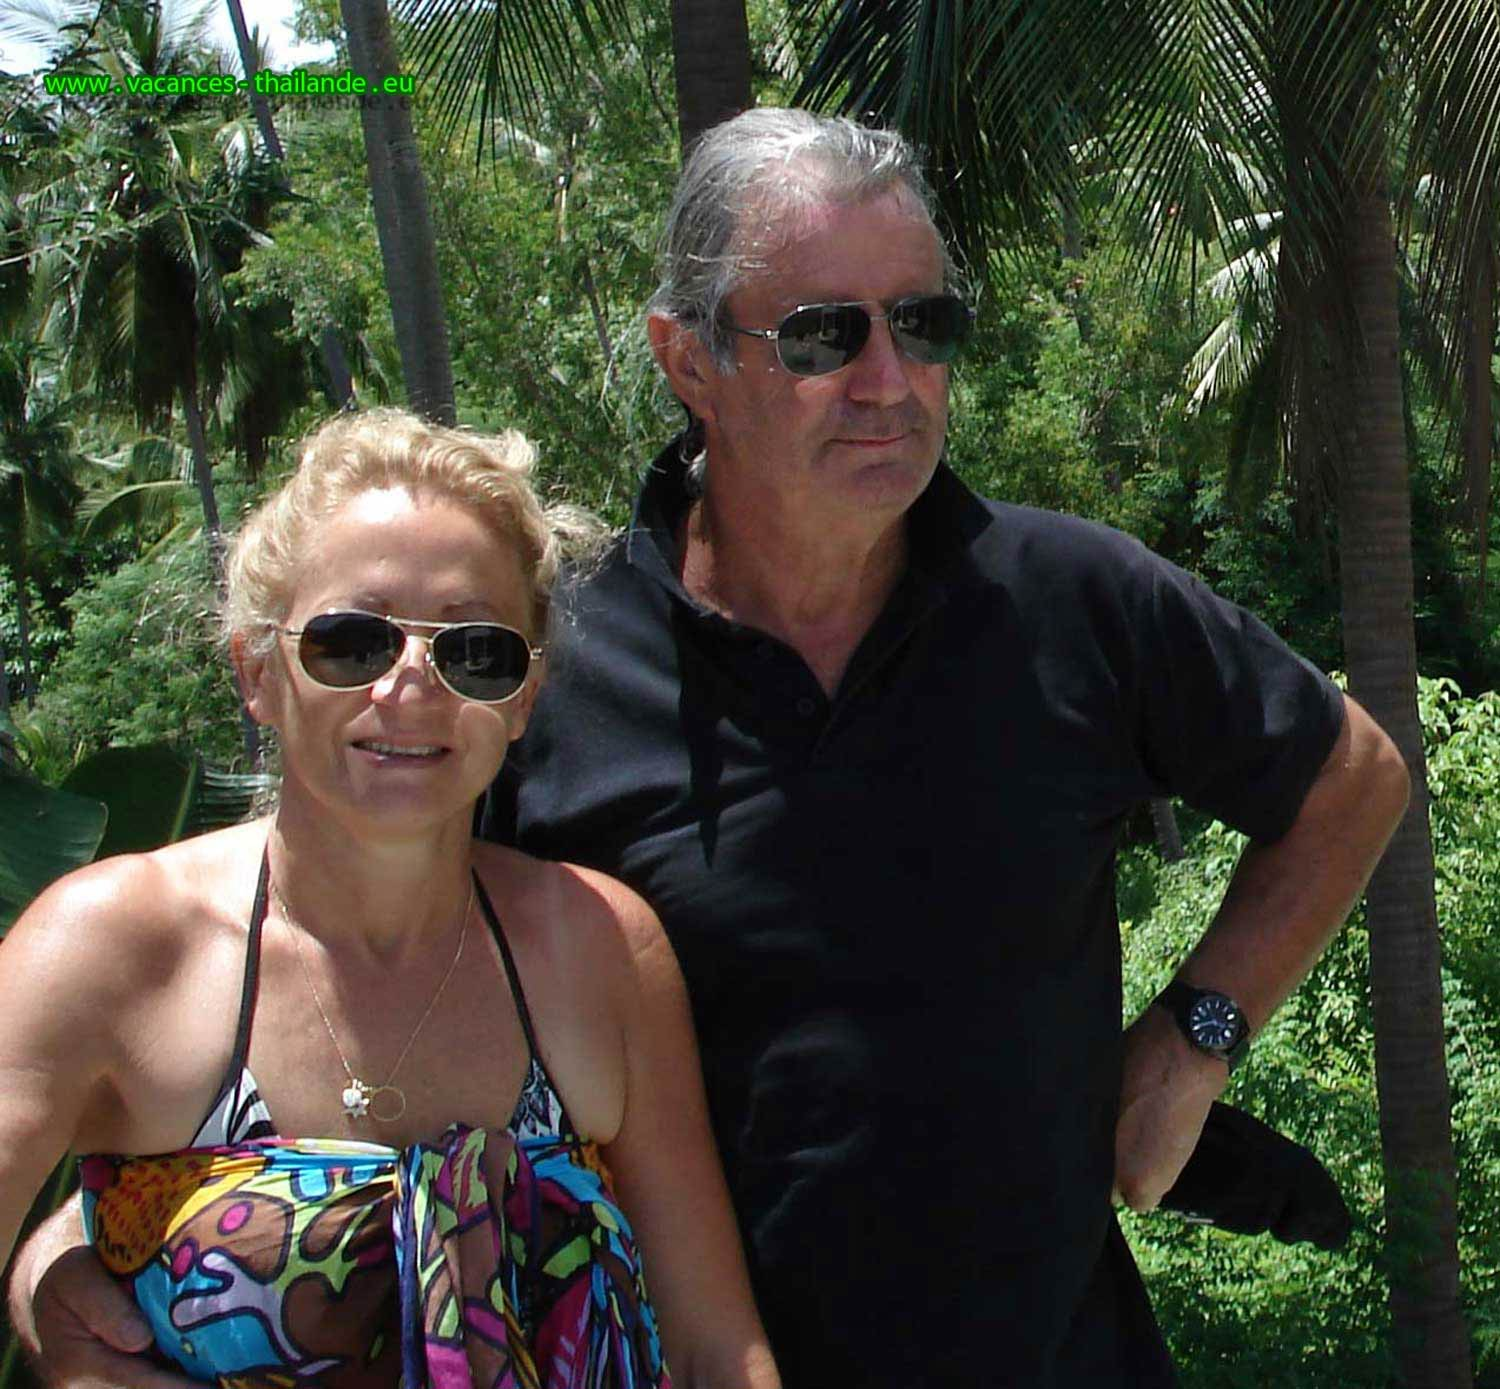 Team, Mary and Patrick welcome you to the island of Koh Samui in Thailand to help you enjoy your holiday